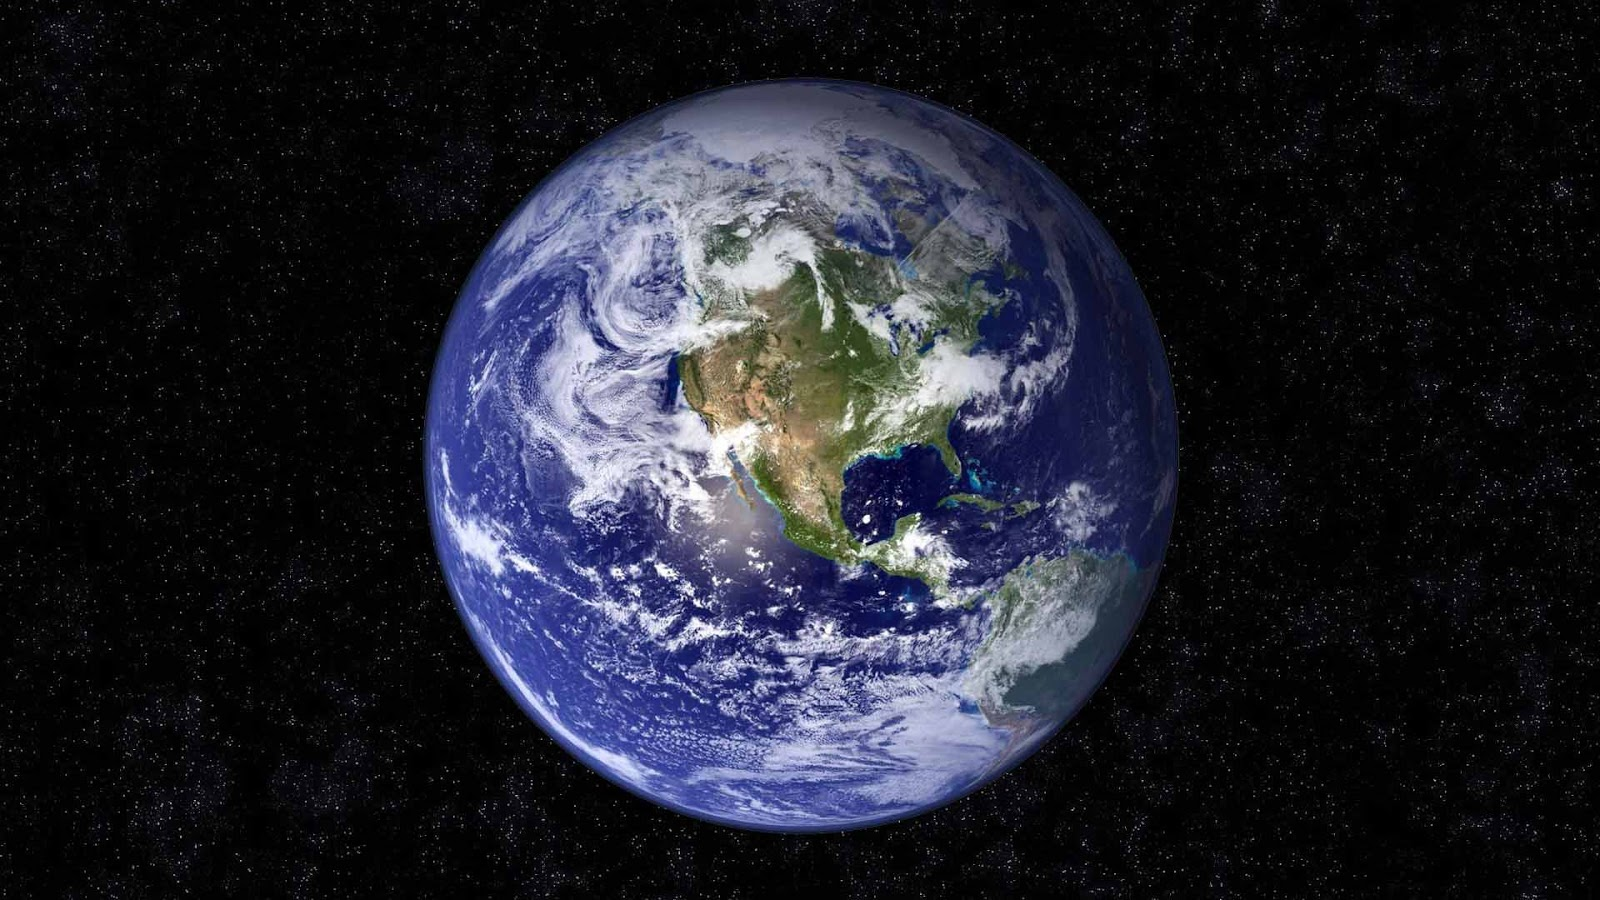 Wallpaper Luar Angkasa Bergerak - Hd Picture Of Earth From Space , HD Wallpaper & Backgrounds